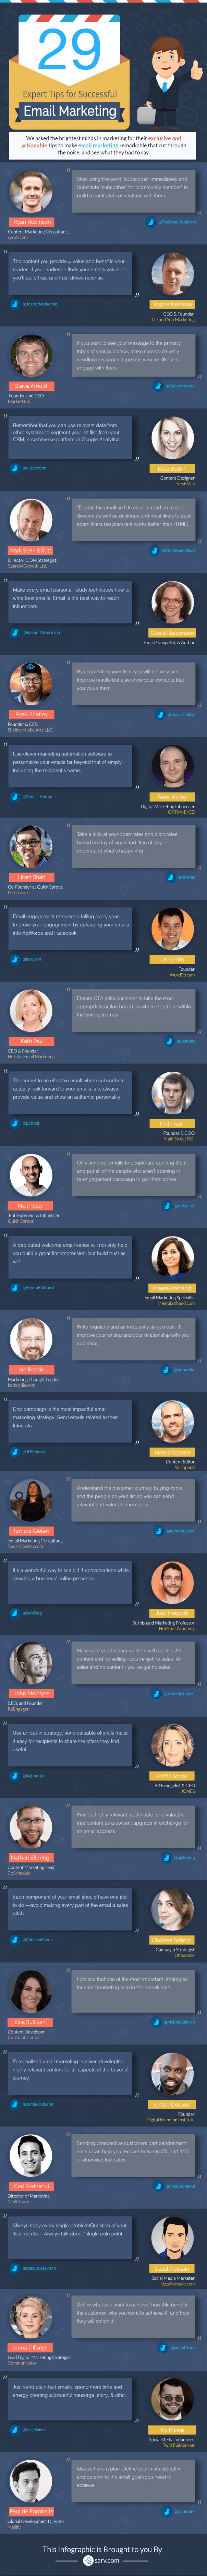 29 Exclusive Email Marketing Tips by Experts [Infographic]